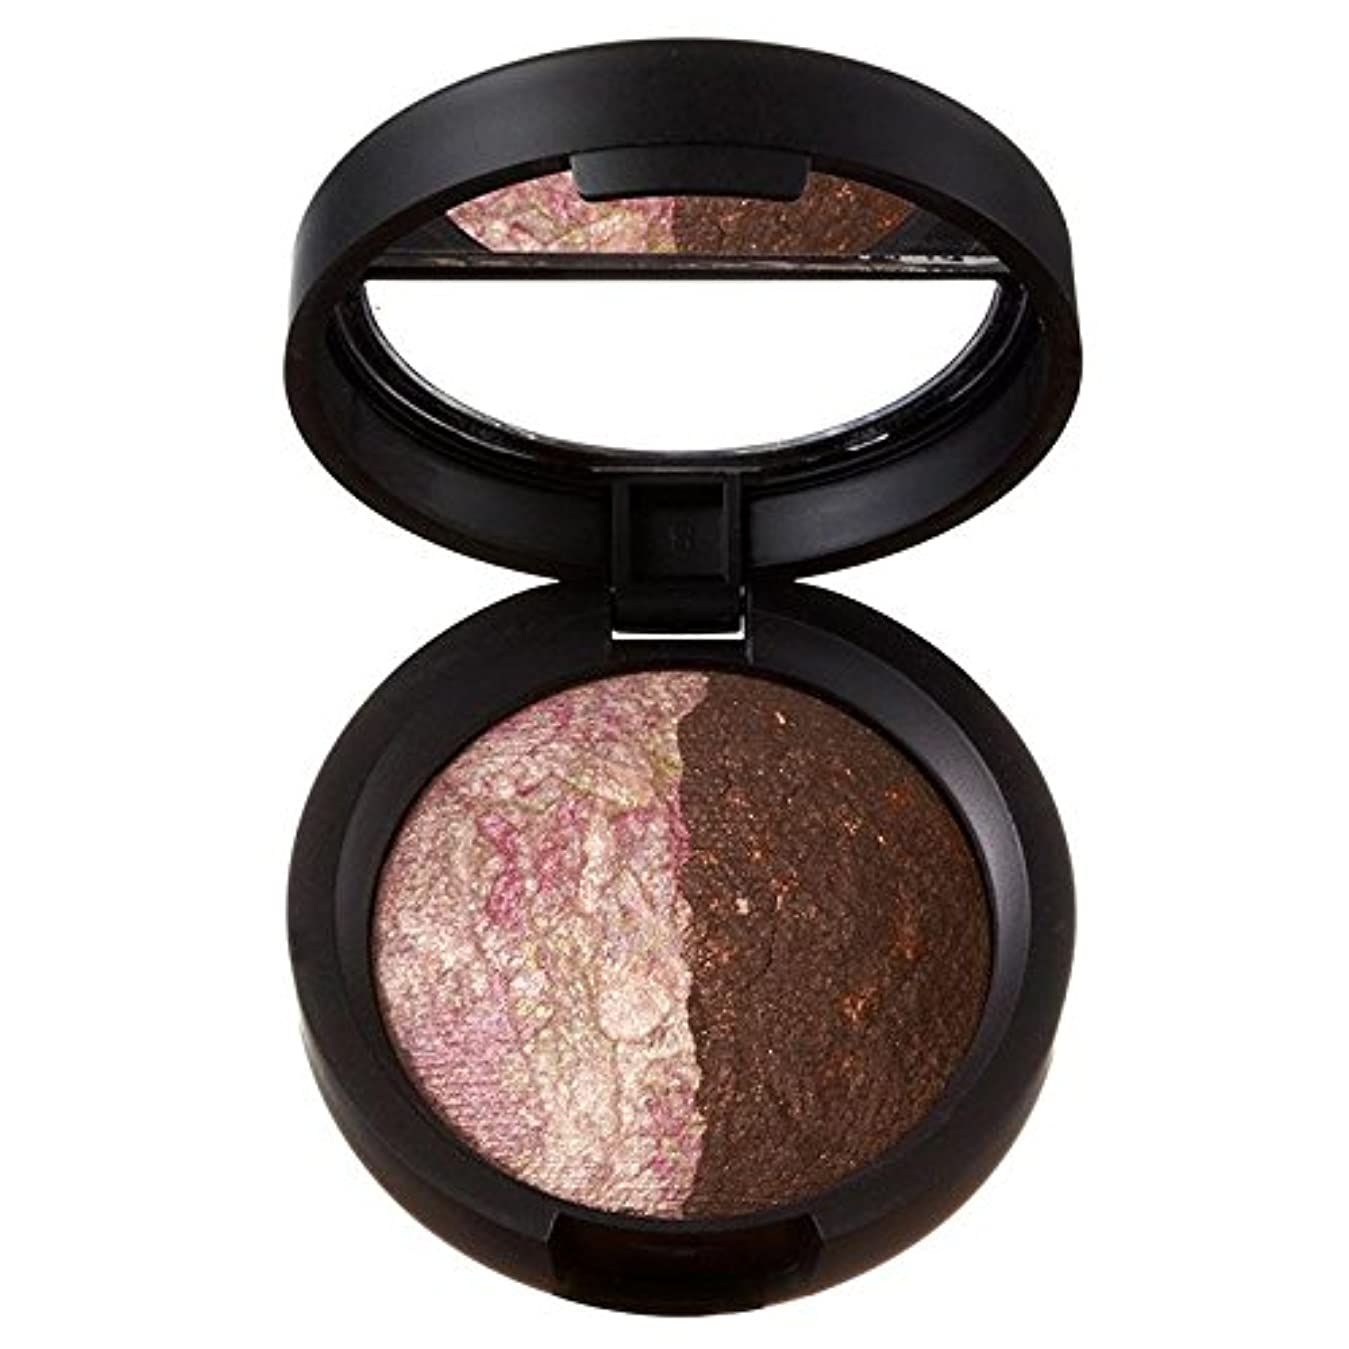 ローラ?ゲラー Baked Marble Shadow Duo - # Pink Icing/Devil's Food 1.8g/0.06oz並行輸入品